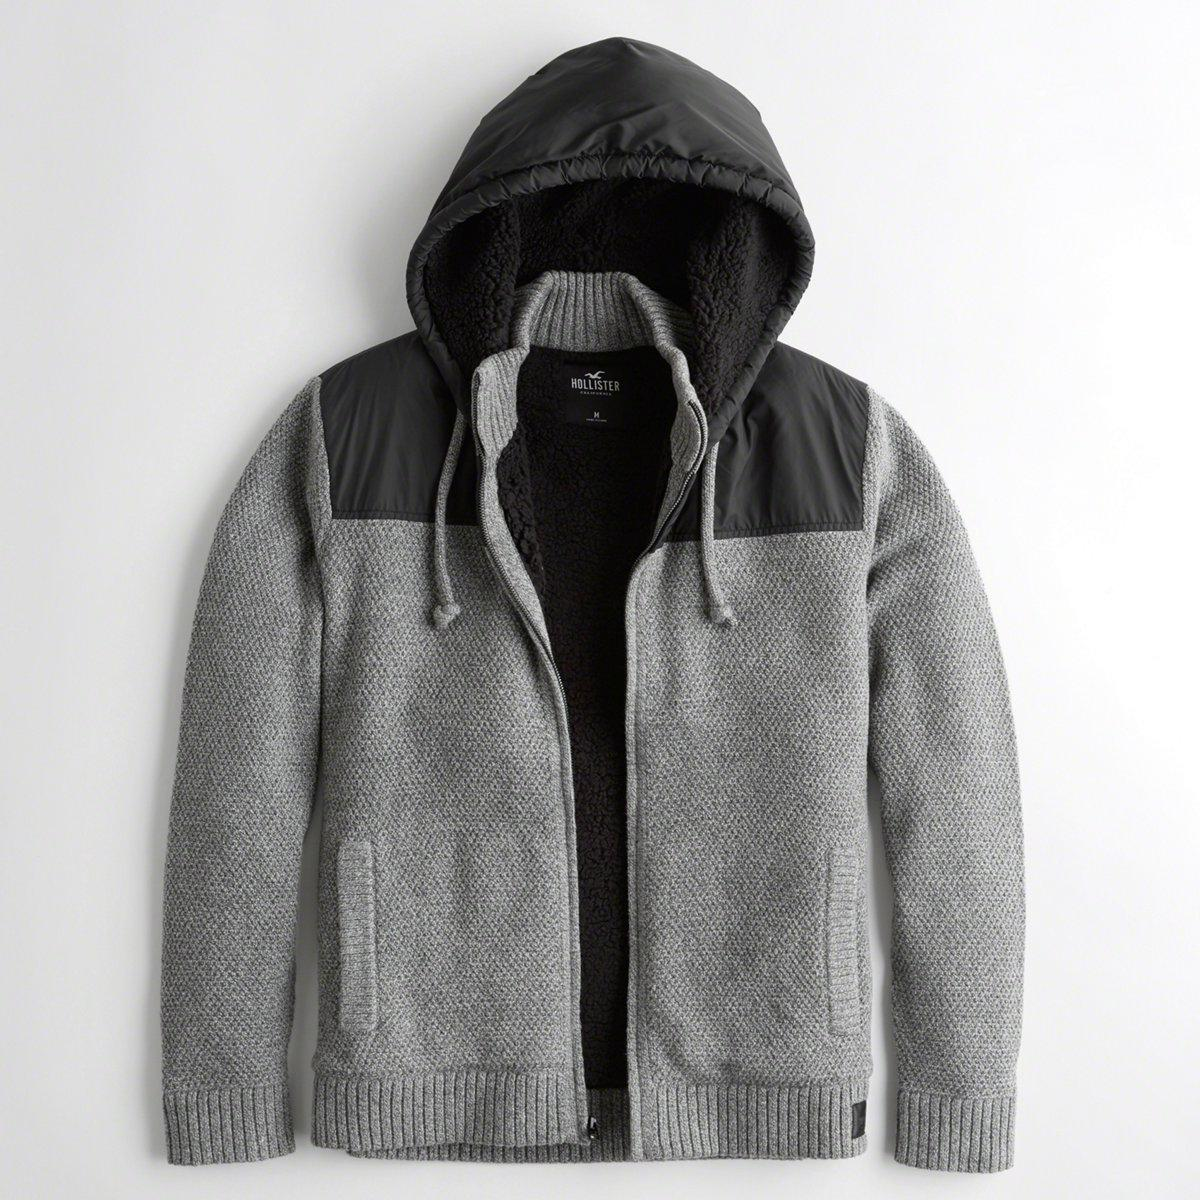 2ffb146e53 Lyst - Hollister Guys Sherpa-lined Sweater Jacket From Hollister in ...